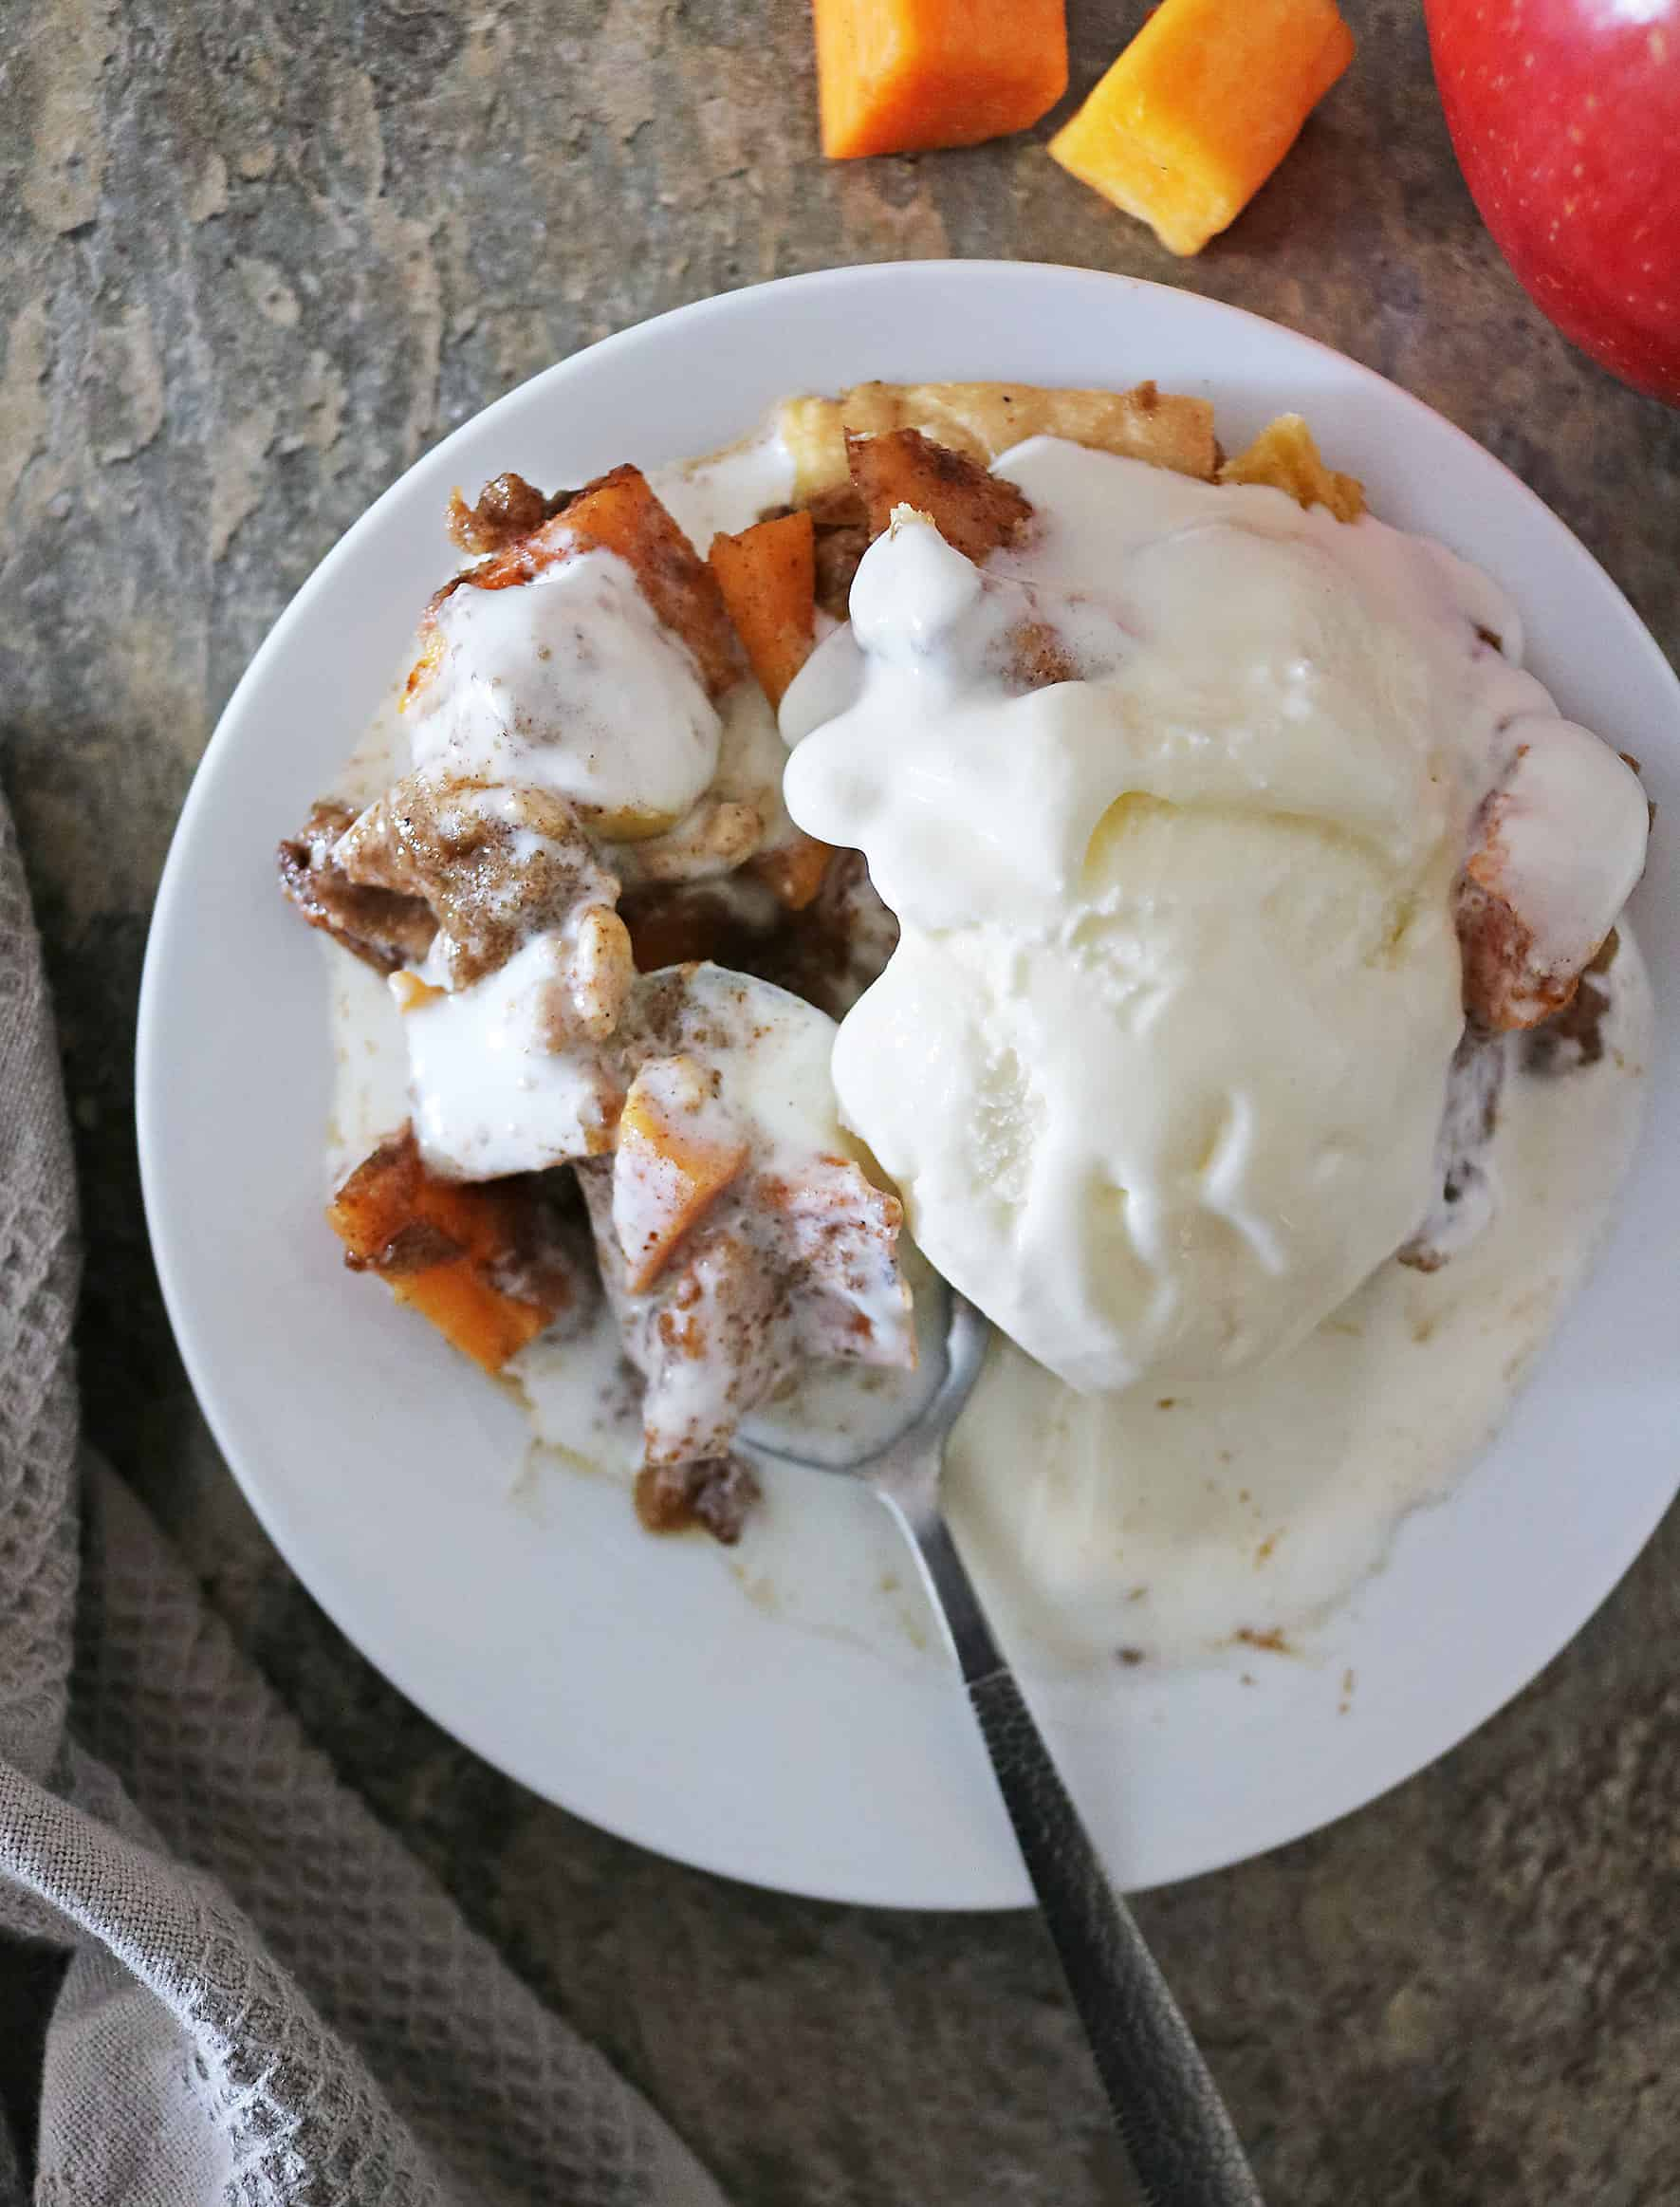 Delicious Apple Crumble Pie with butternut squash and Tillamook